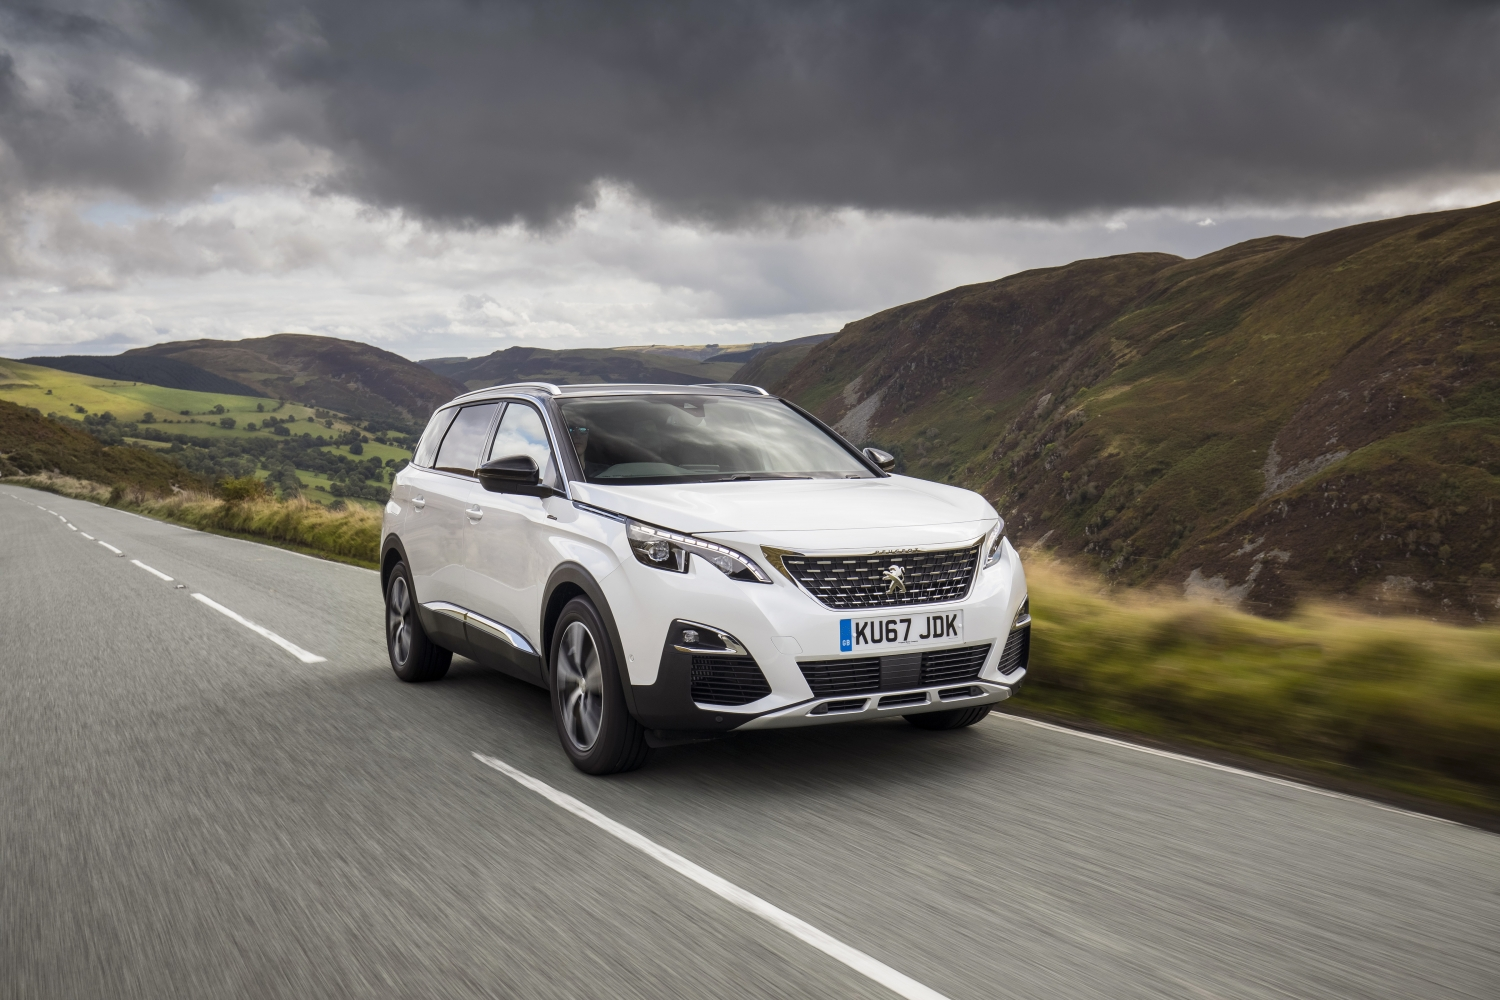 Peugeot 5008 driving towards you on a country road